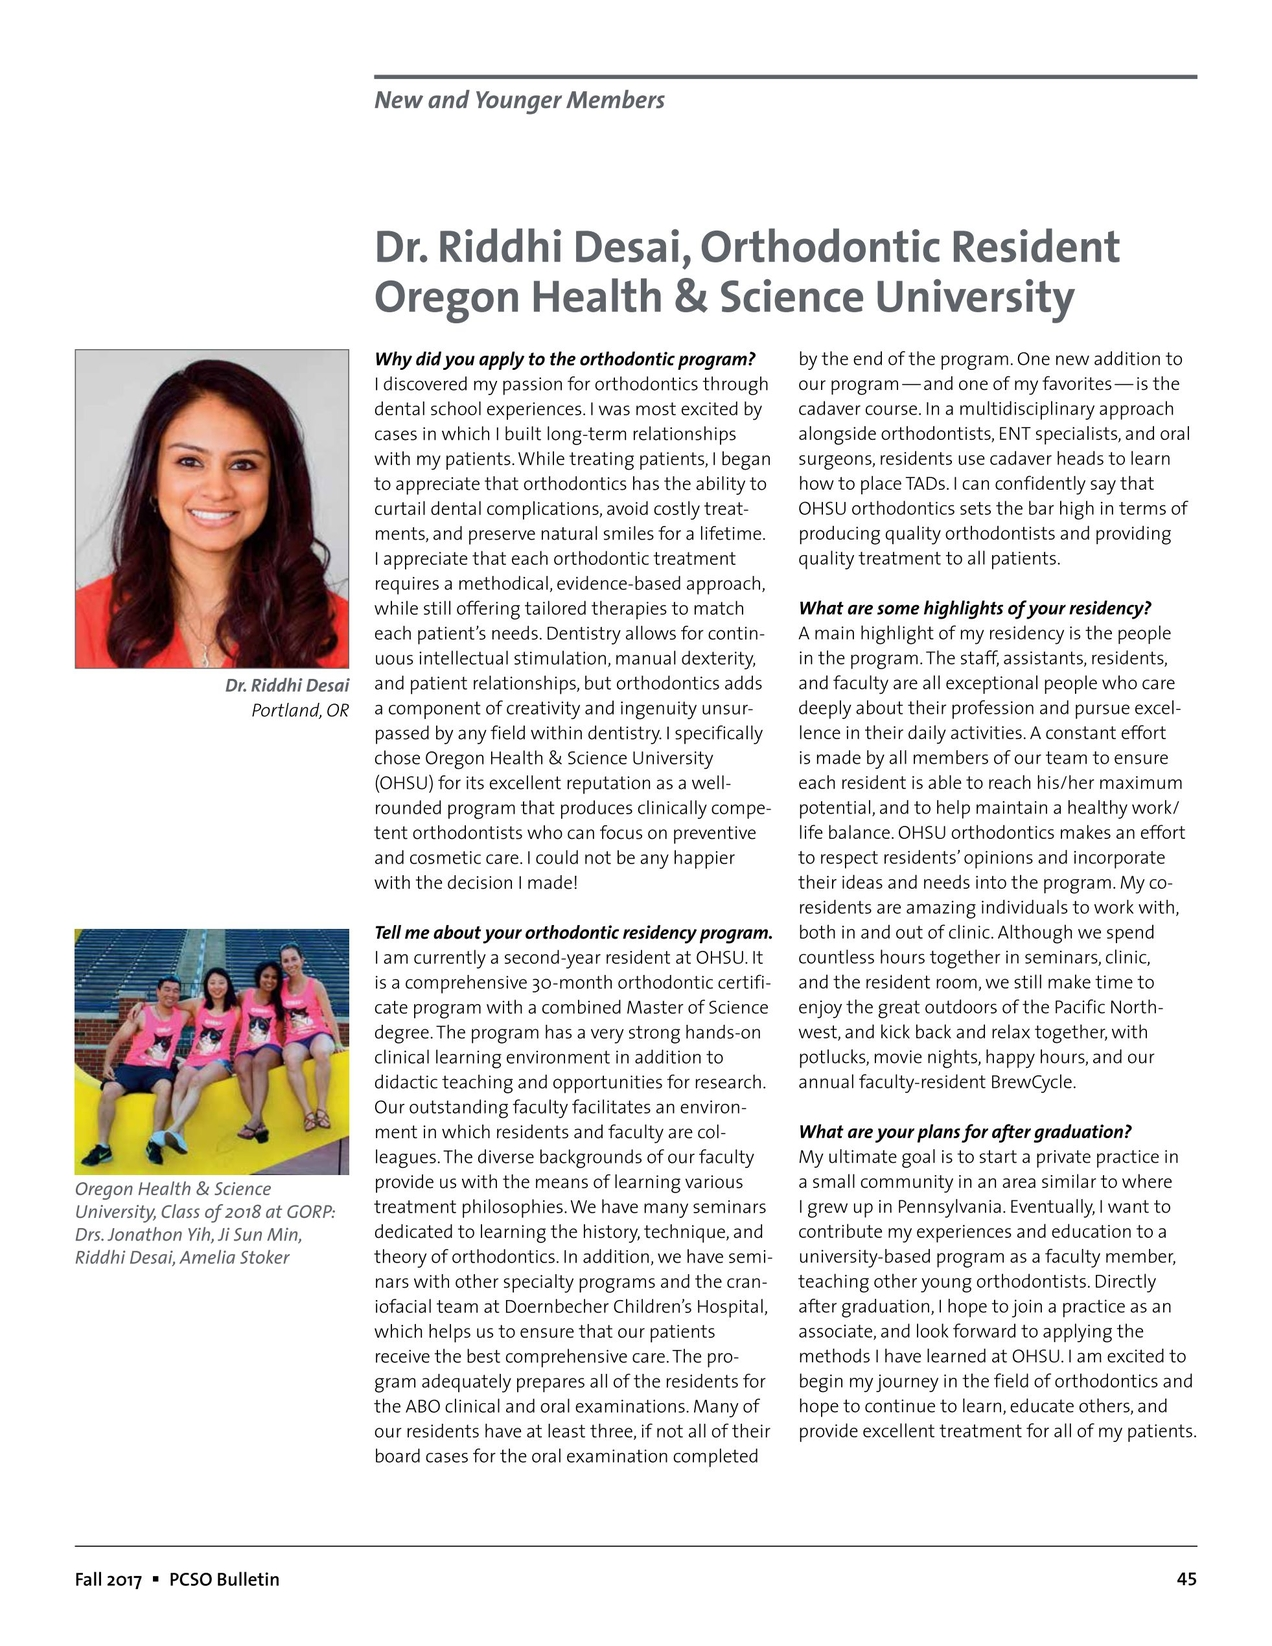 Pacific Coast Society of Orthodontists Bulletin Fall 2017